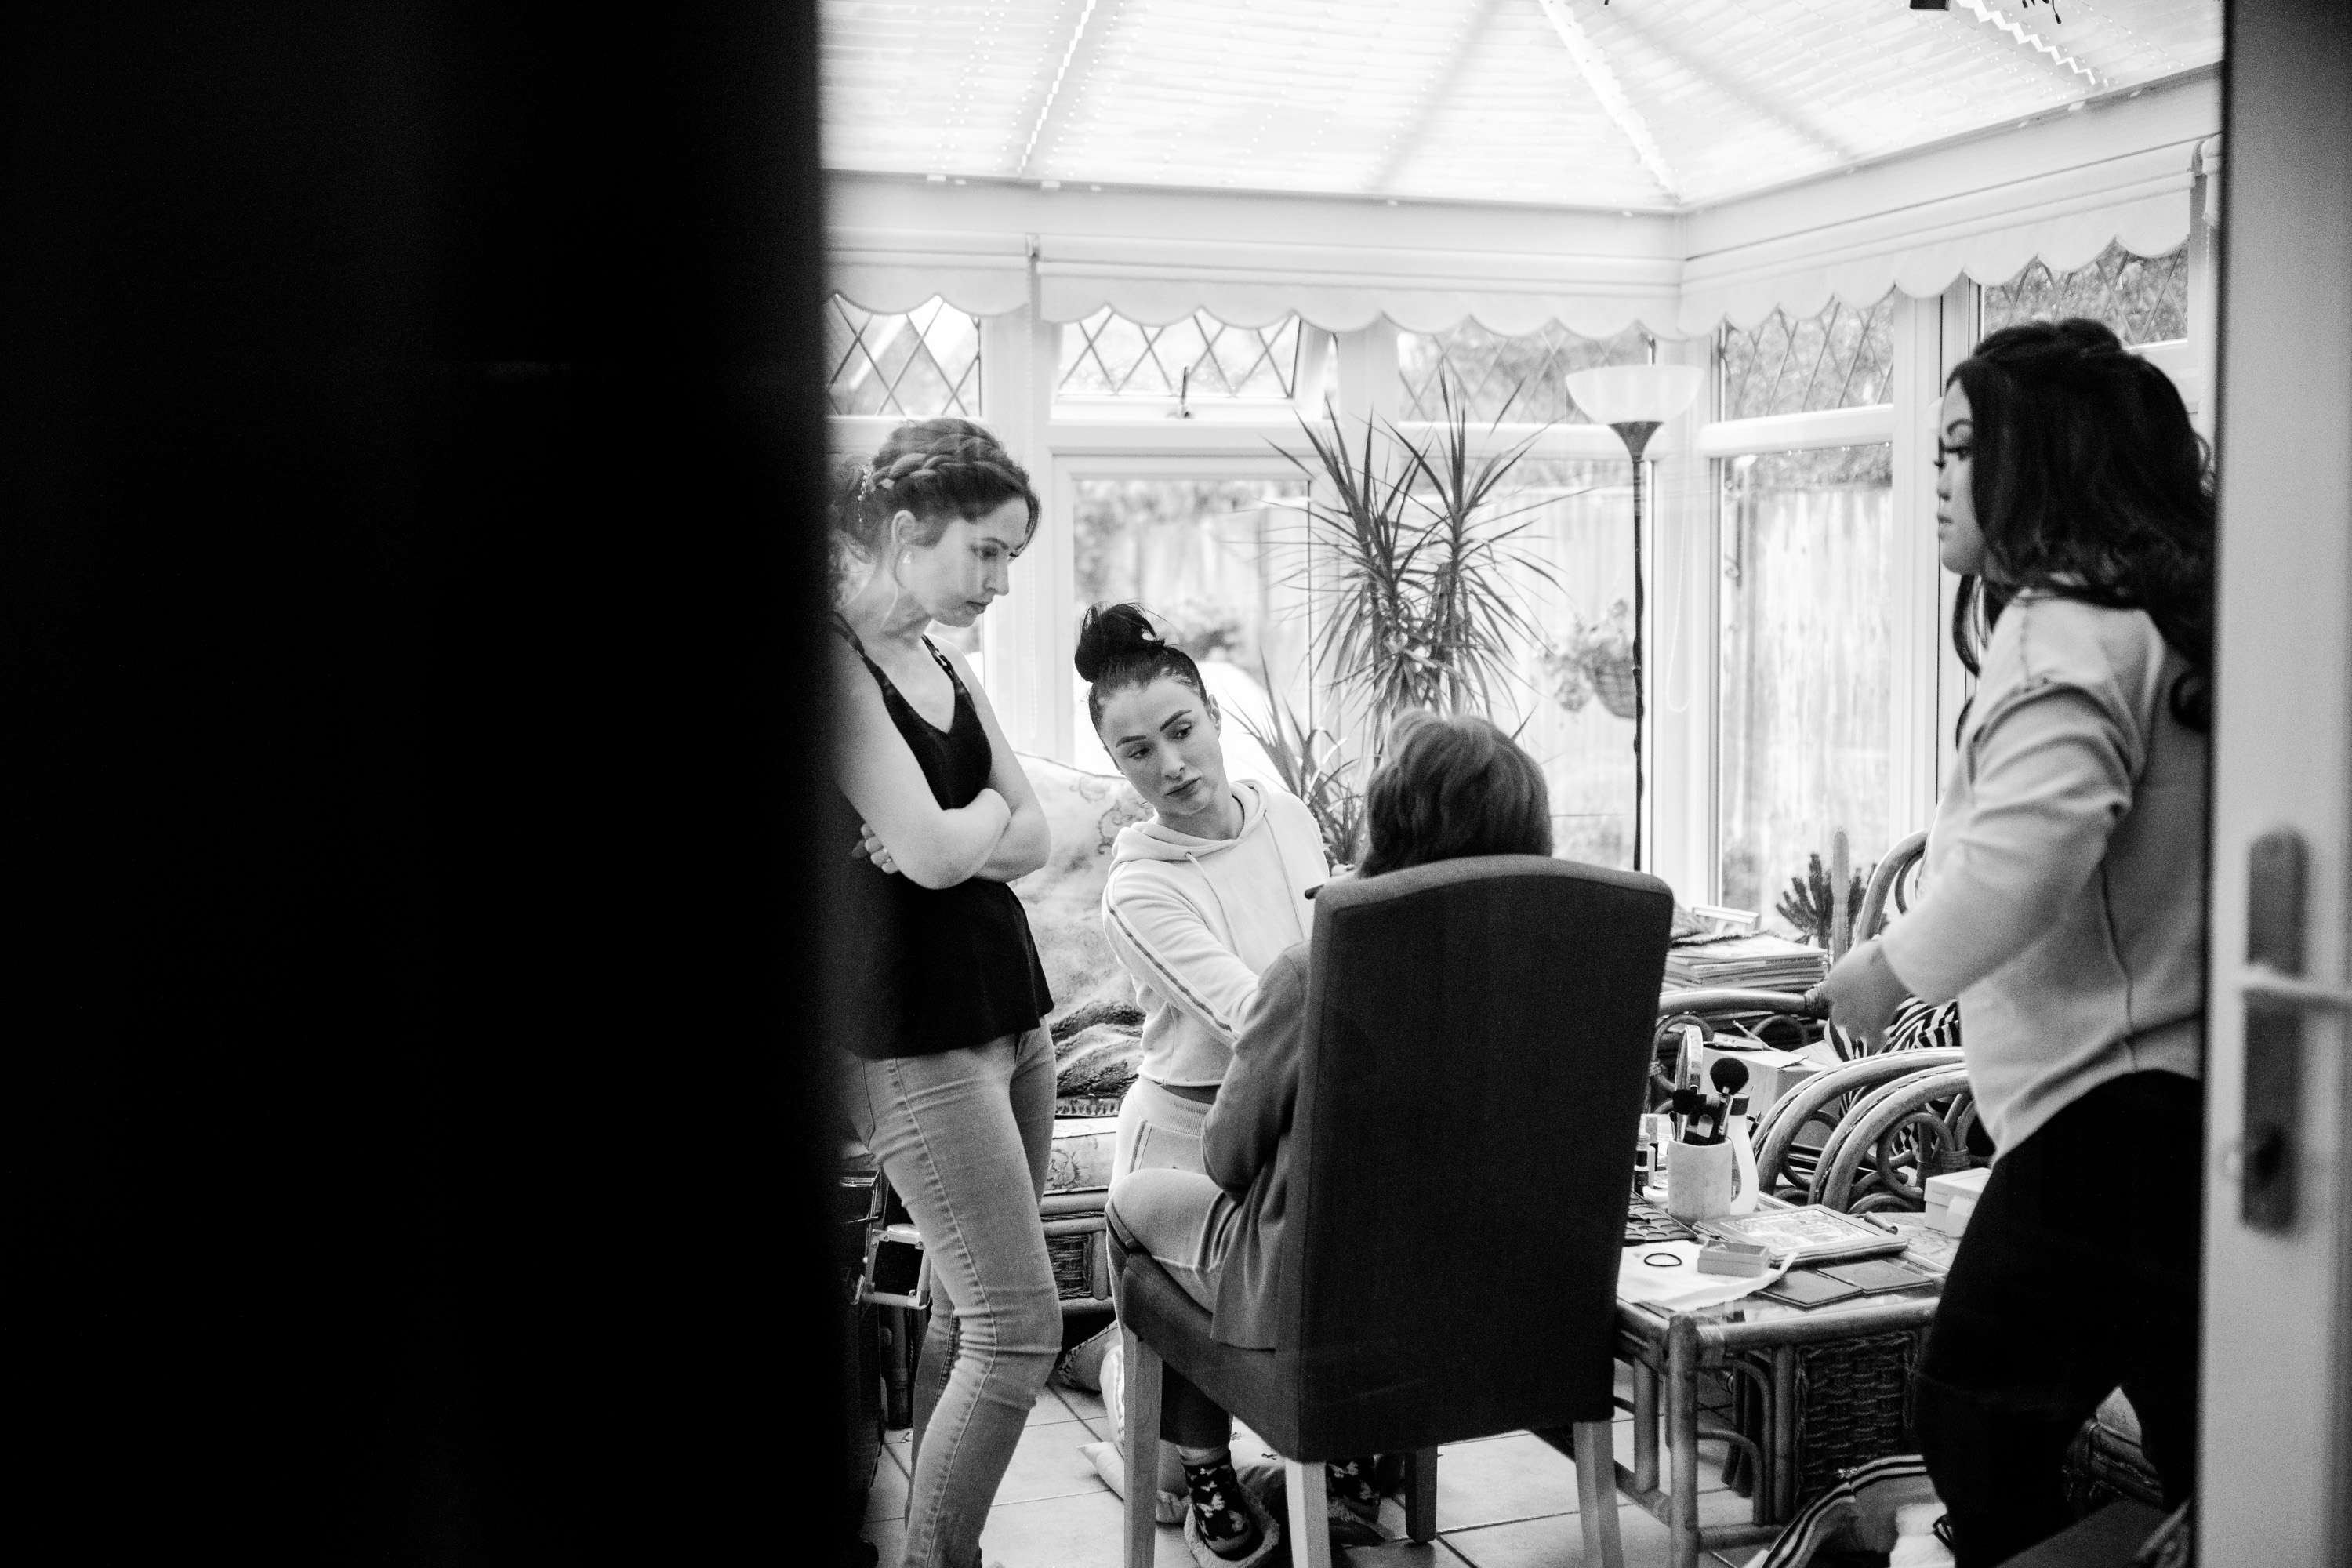 A wedding photo of the bride and bridesmaids getting ready on the wedding morning. Taken in Chichester, Sussex